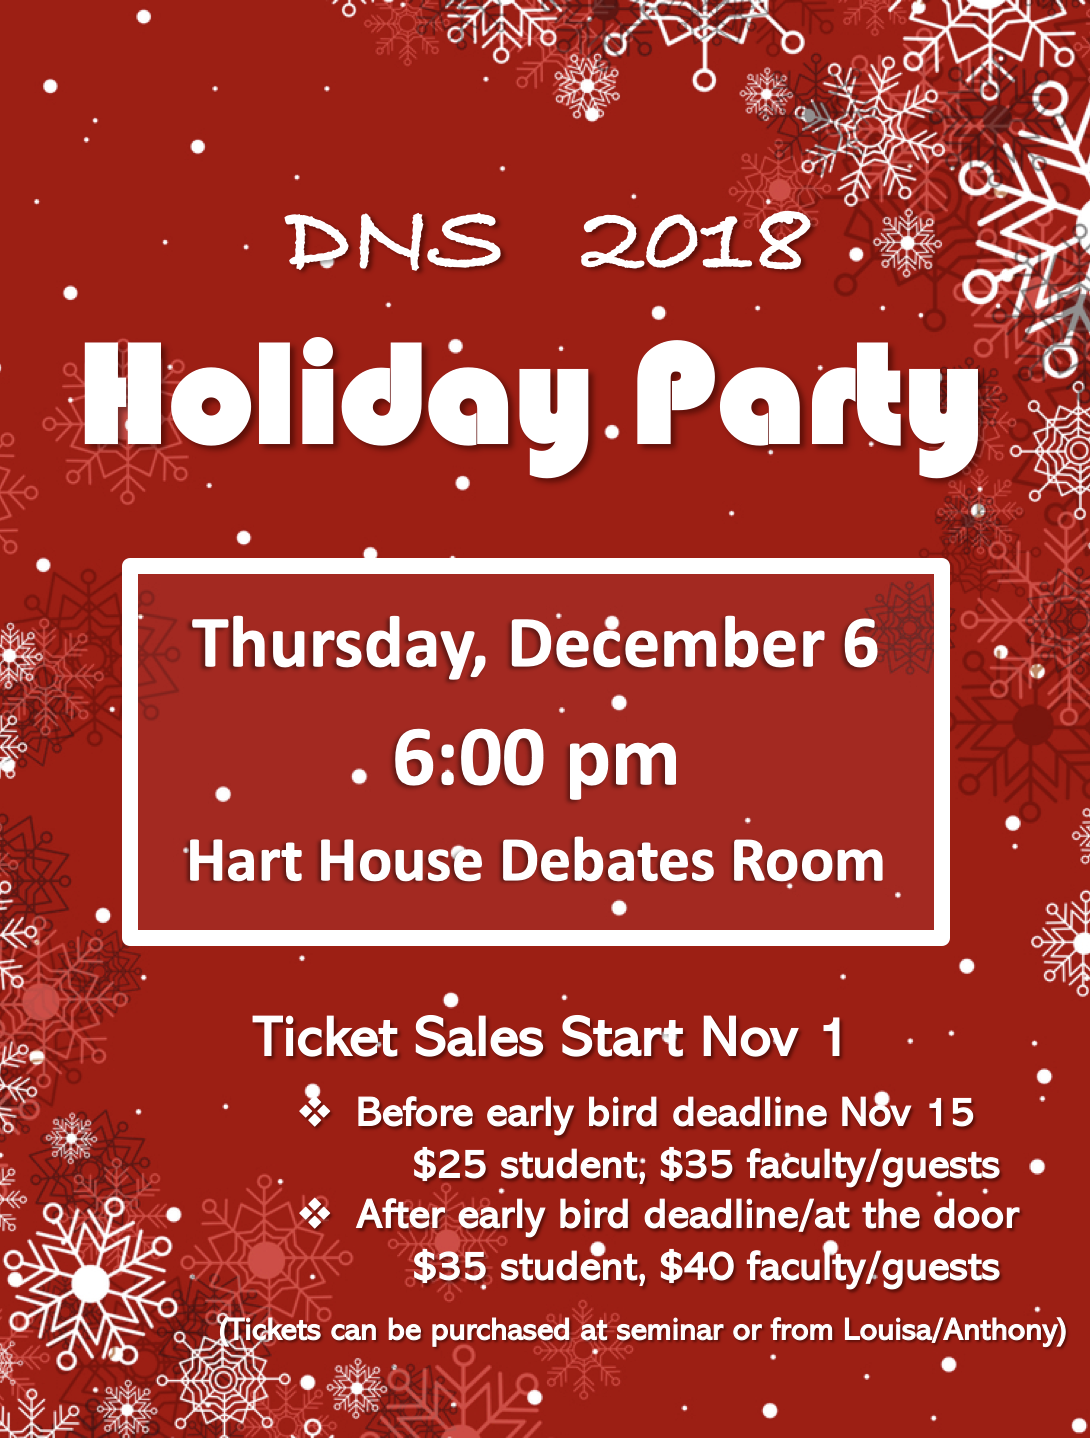 DNS Holiday Party Poster